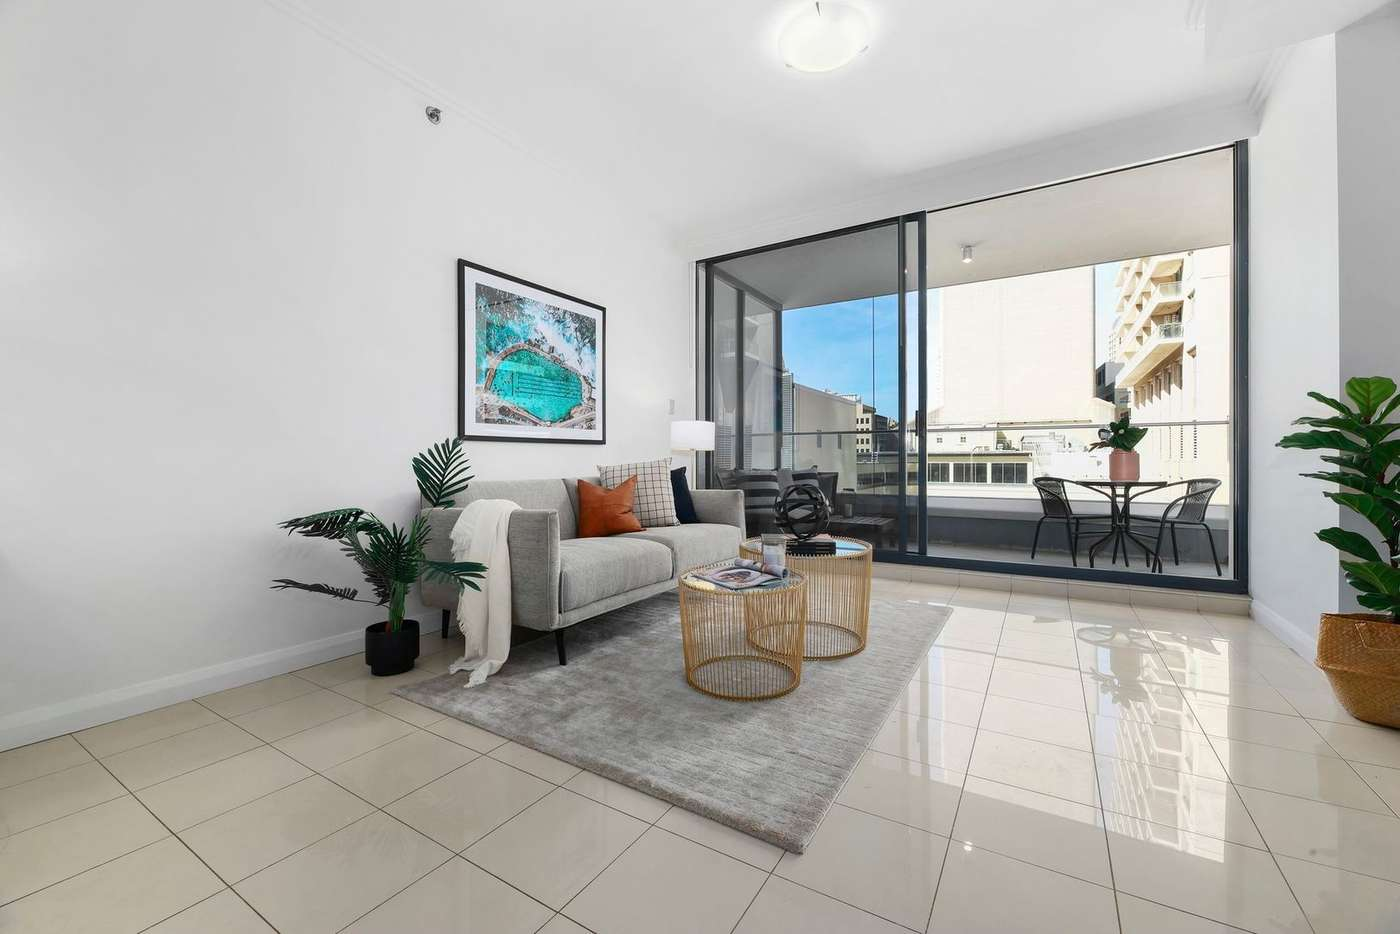 Main view of Homely apartment listing, 1917/91 Liverpool St, Sydney NSW 2000